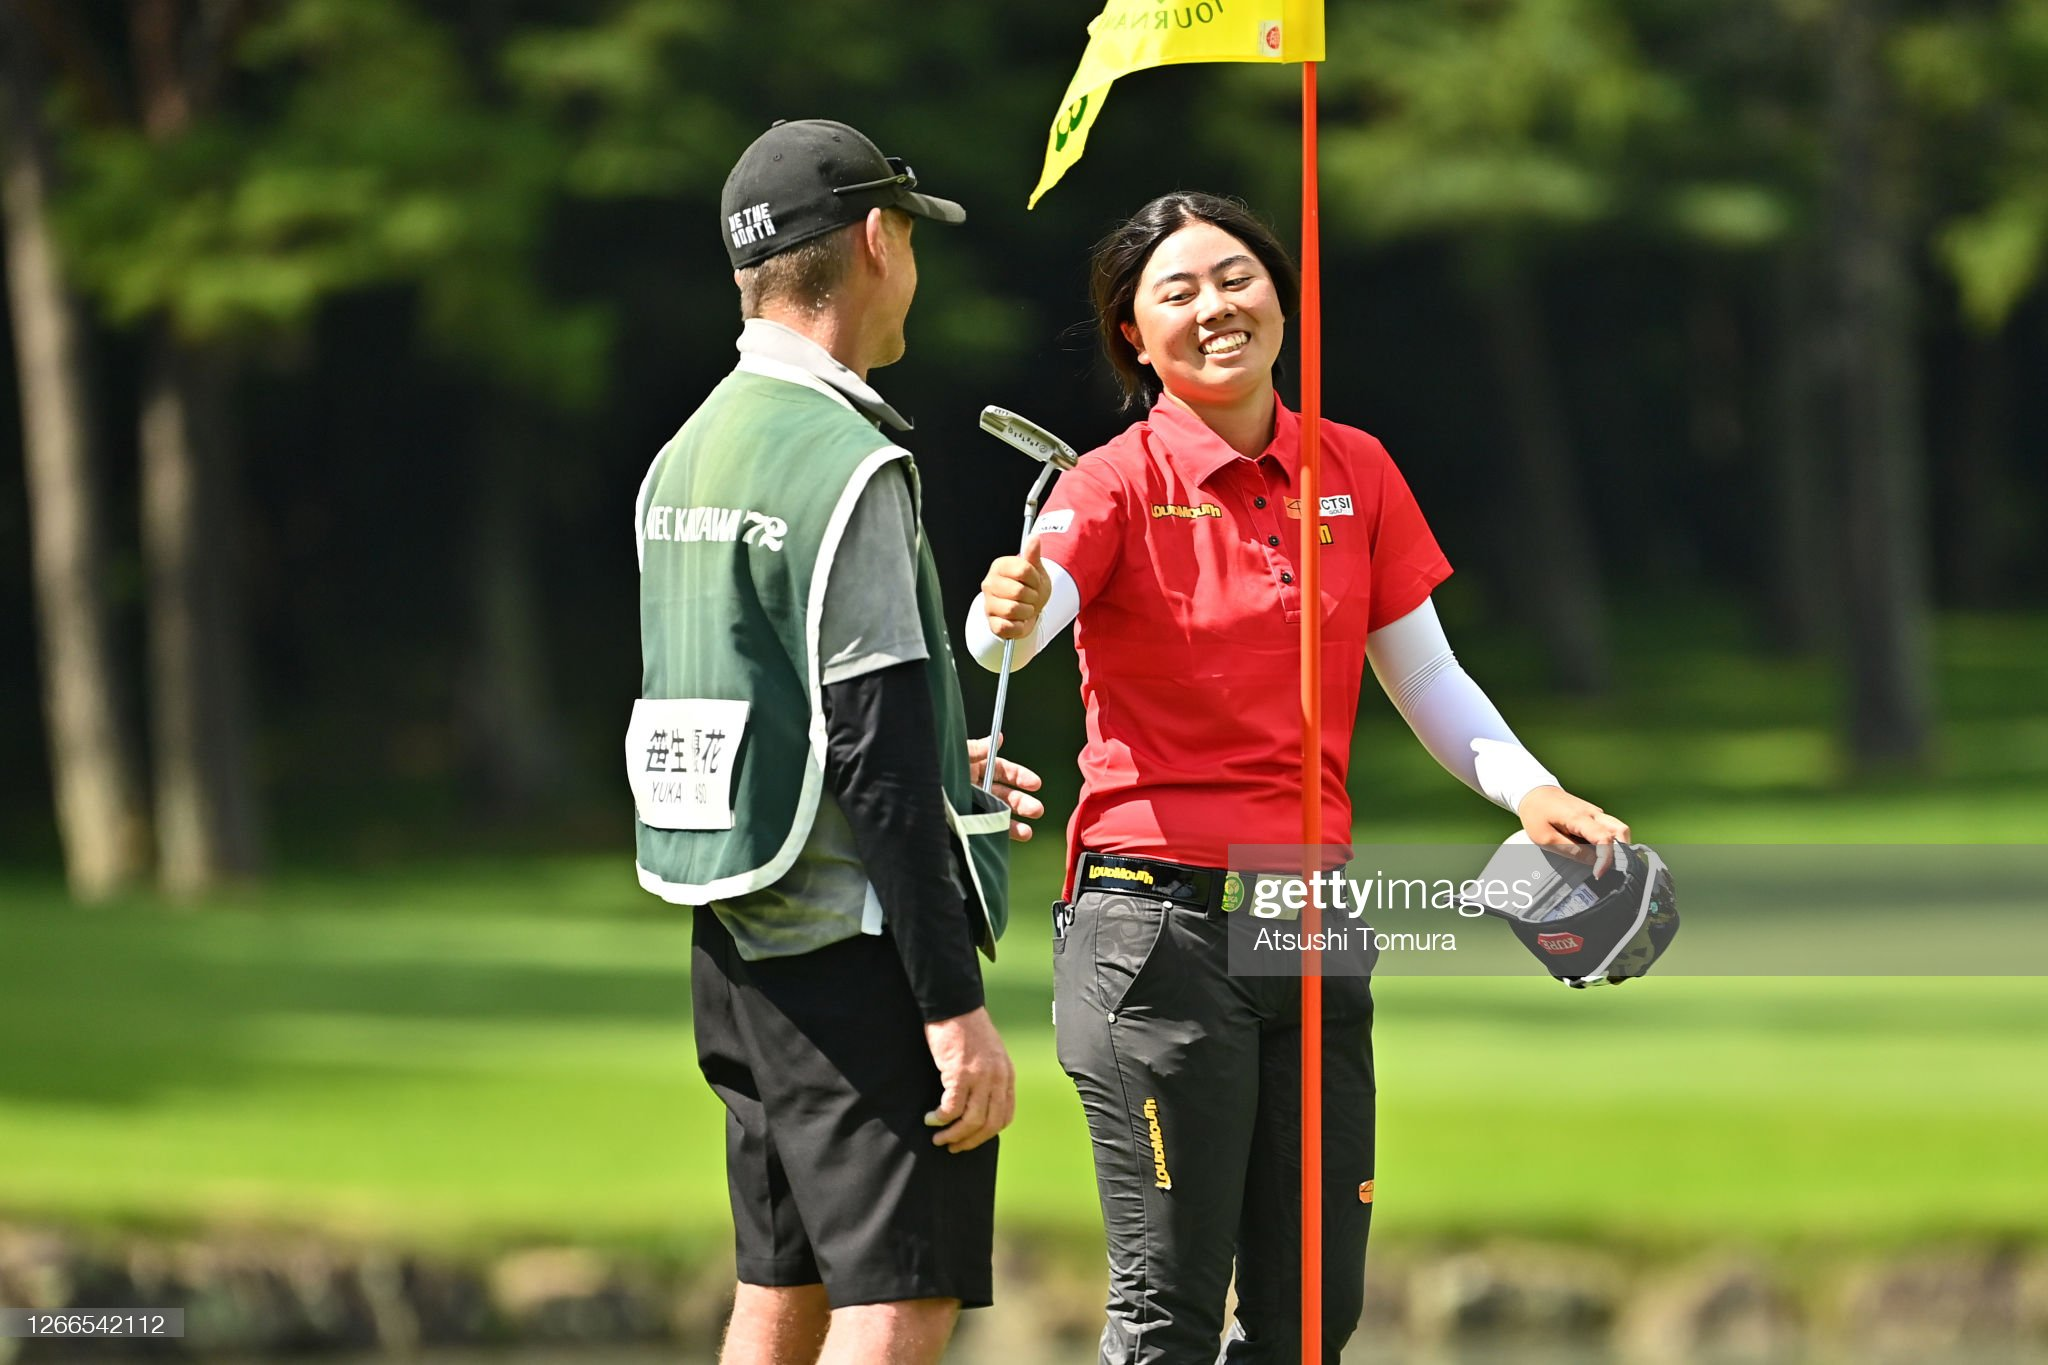 https://media.gettyimages.com/photos/yuka-saso-of-japan-smiles-after-holing-out-on-the-18th-green-during-picture-id1266542112?s=2048x2048